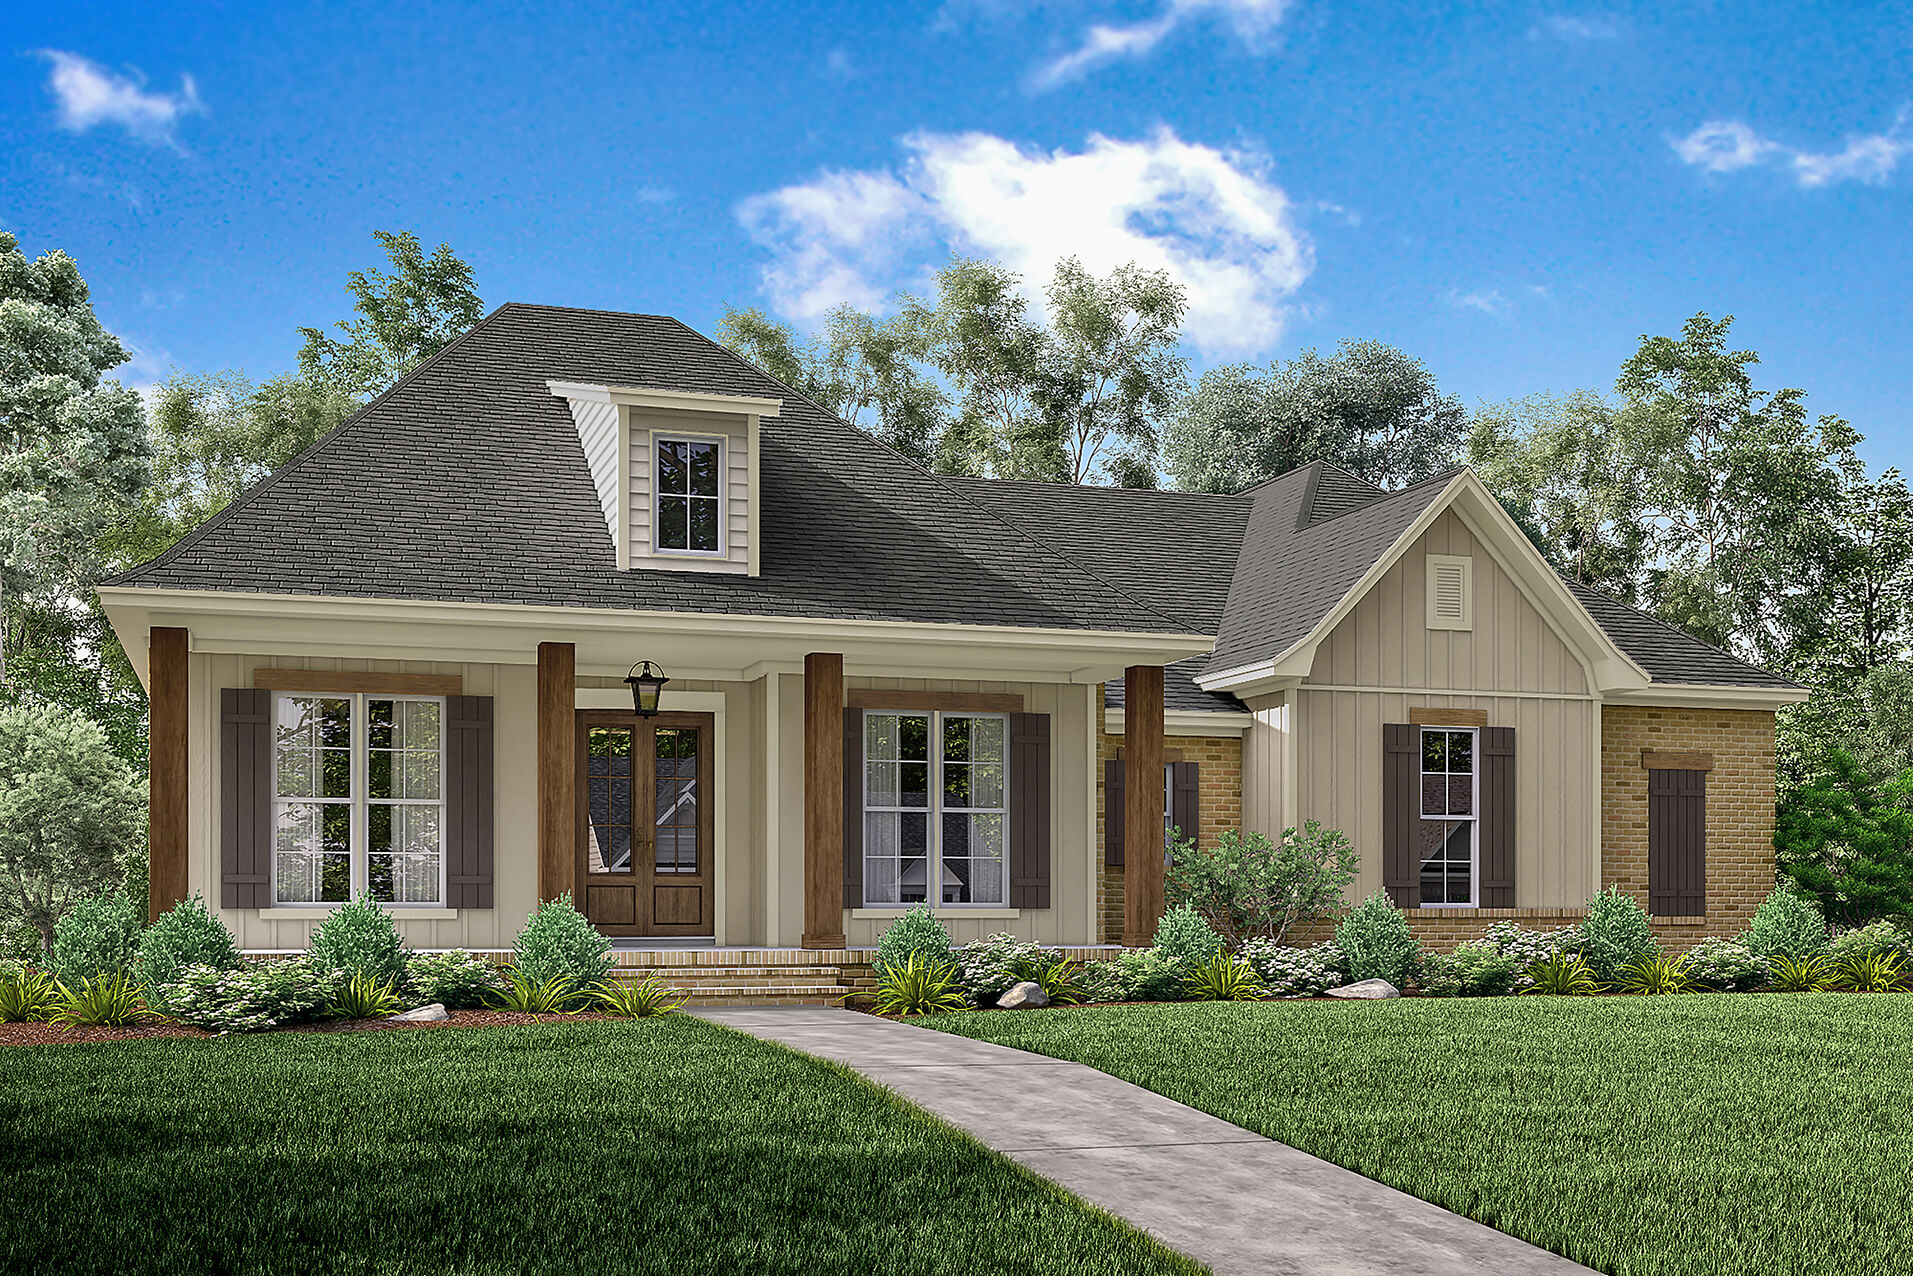 3 bedrm 1900 sq ft acadian house plan 142 1163 for Home house plans